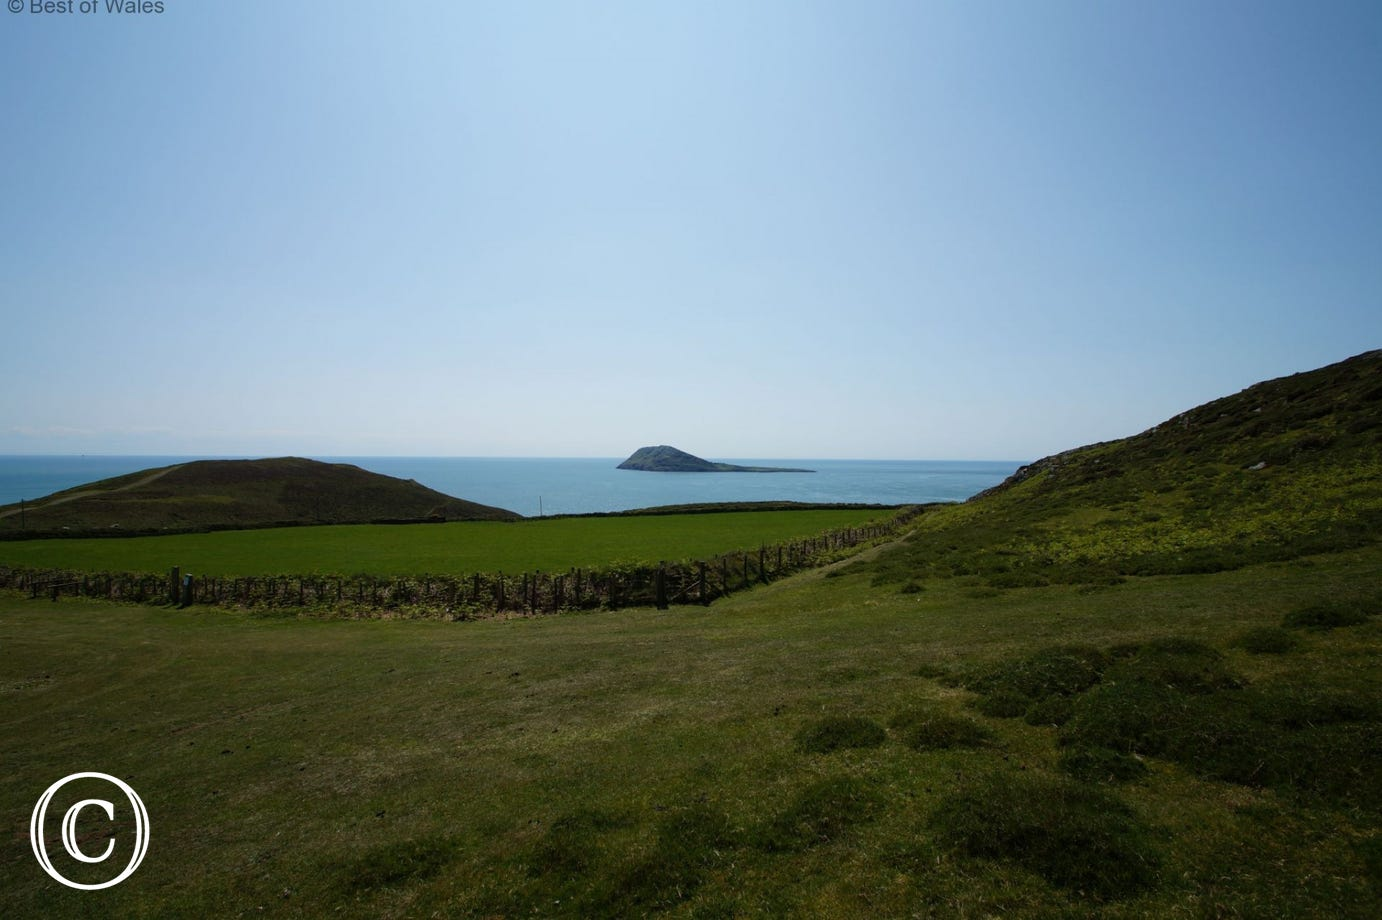 Catch a boat to Bardsey Island, a former site of religious pilgrimage